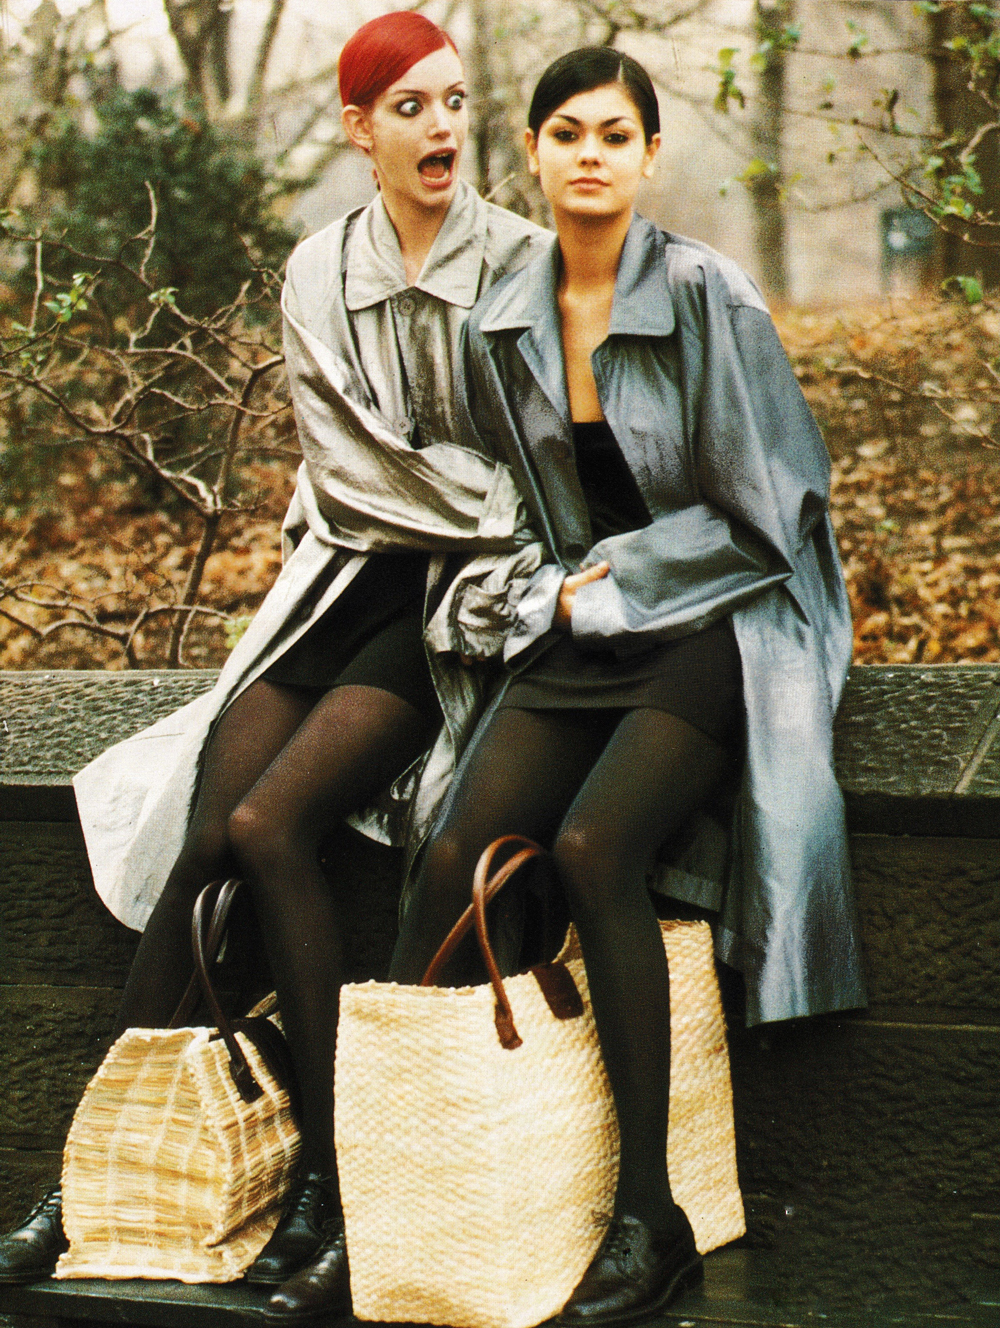 Vogue Italia January 1994 via www.fashionedbylove.co.uk